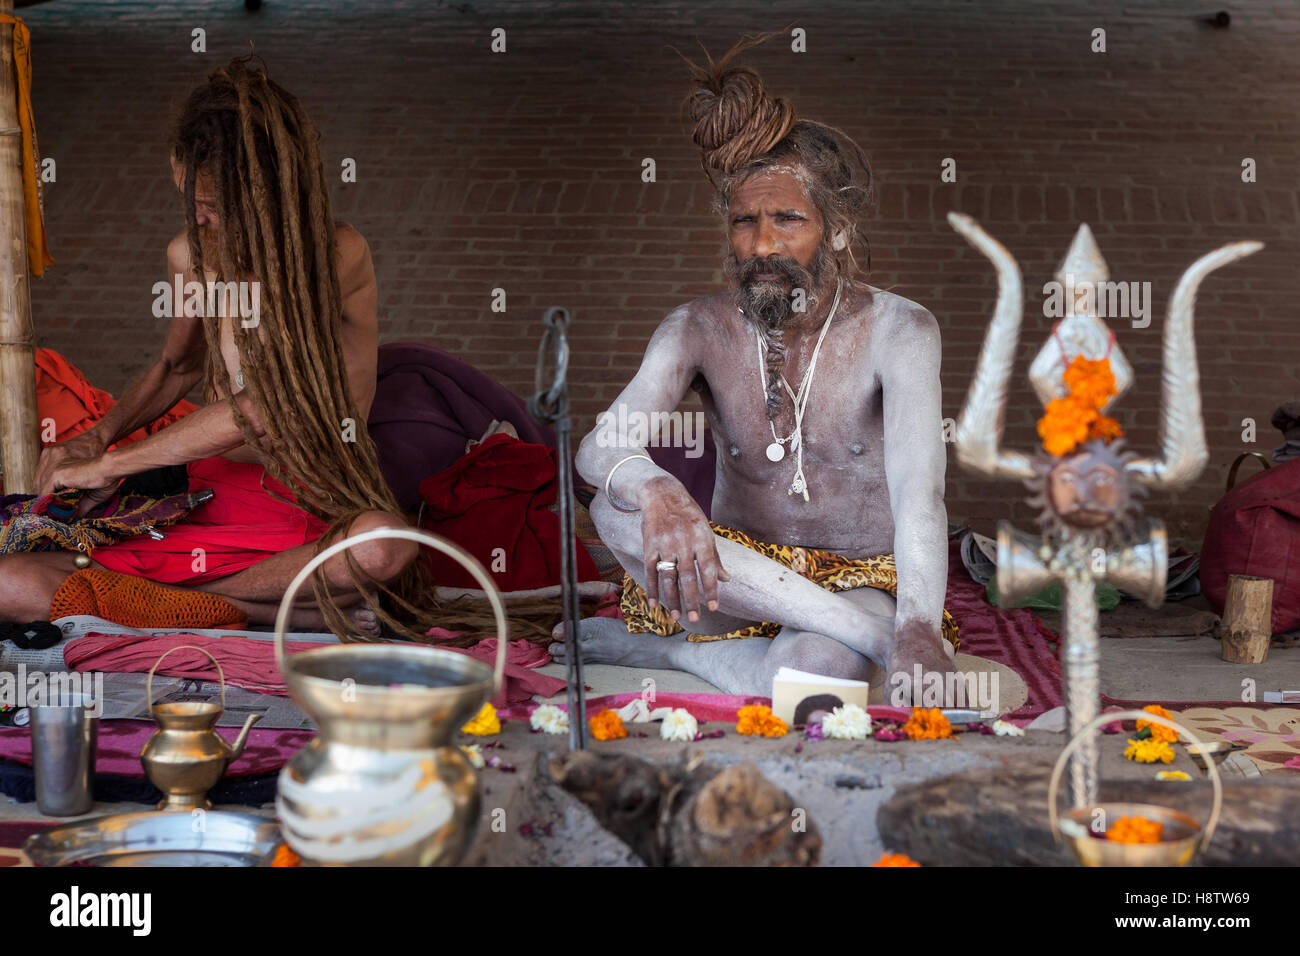 Hinduism and Buddhism have similarities in the Ganges culture, hindu and buddhist people live, pray and share together - Stock Image